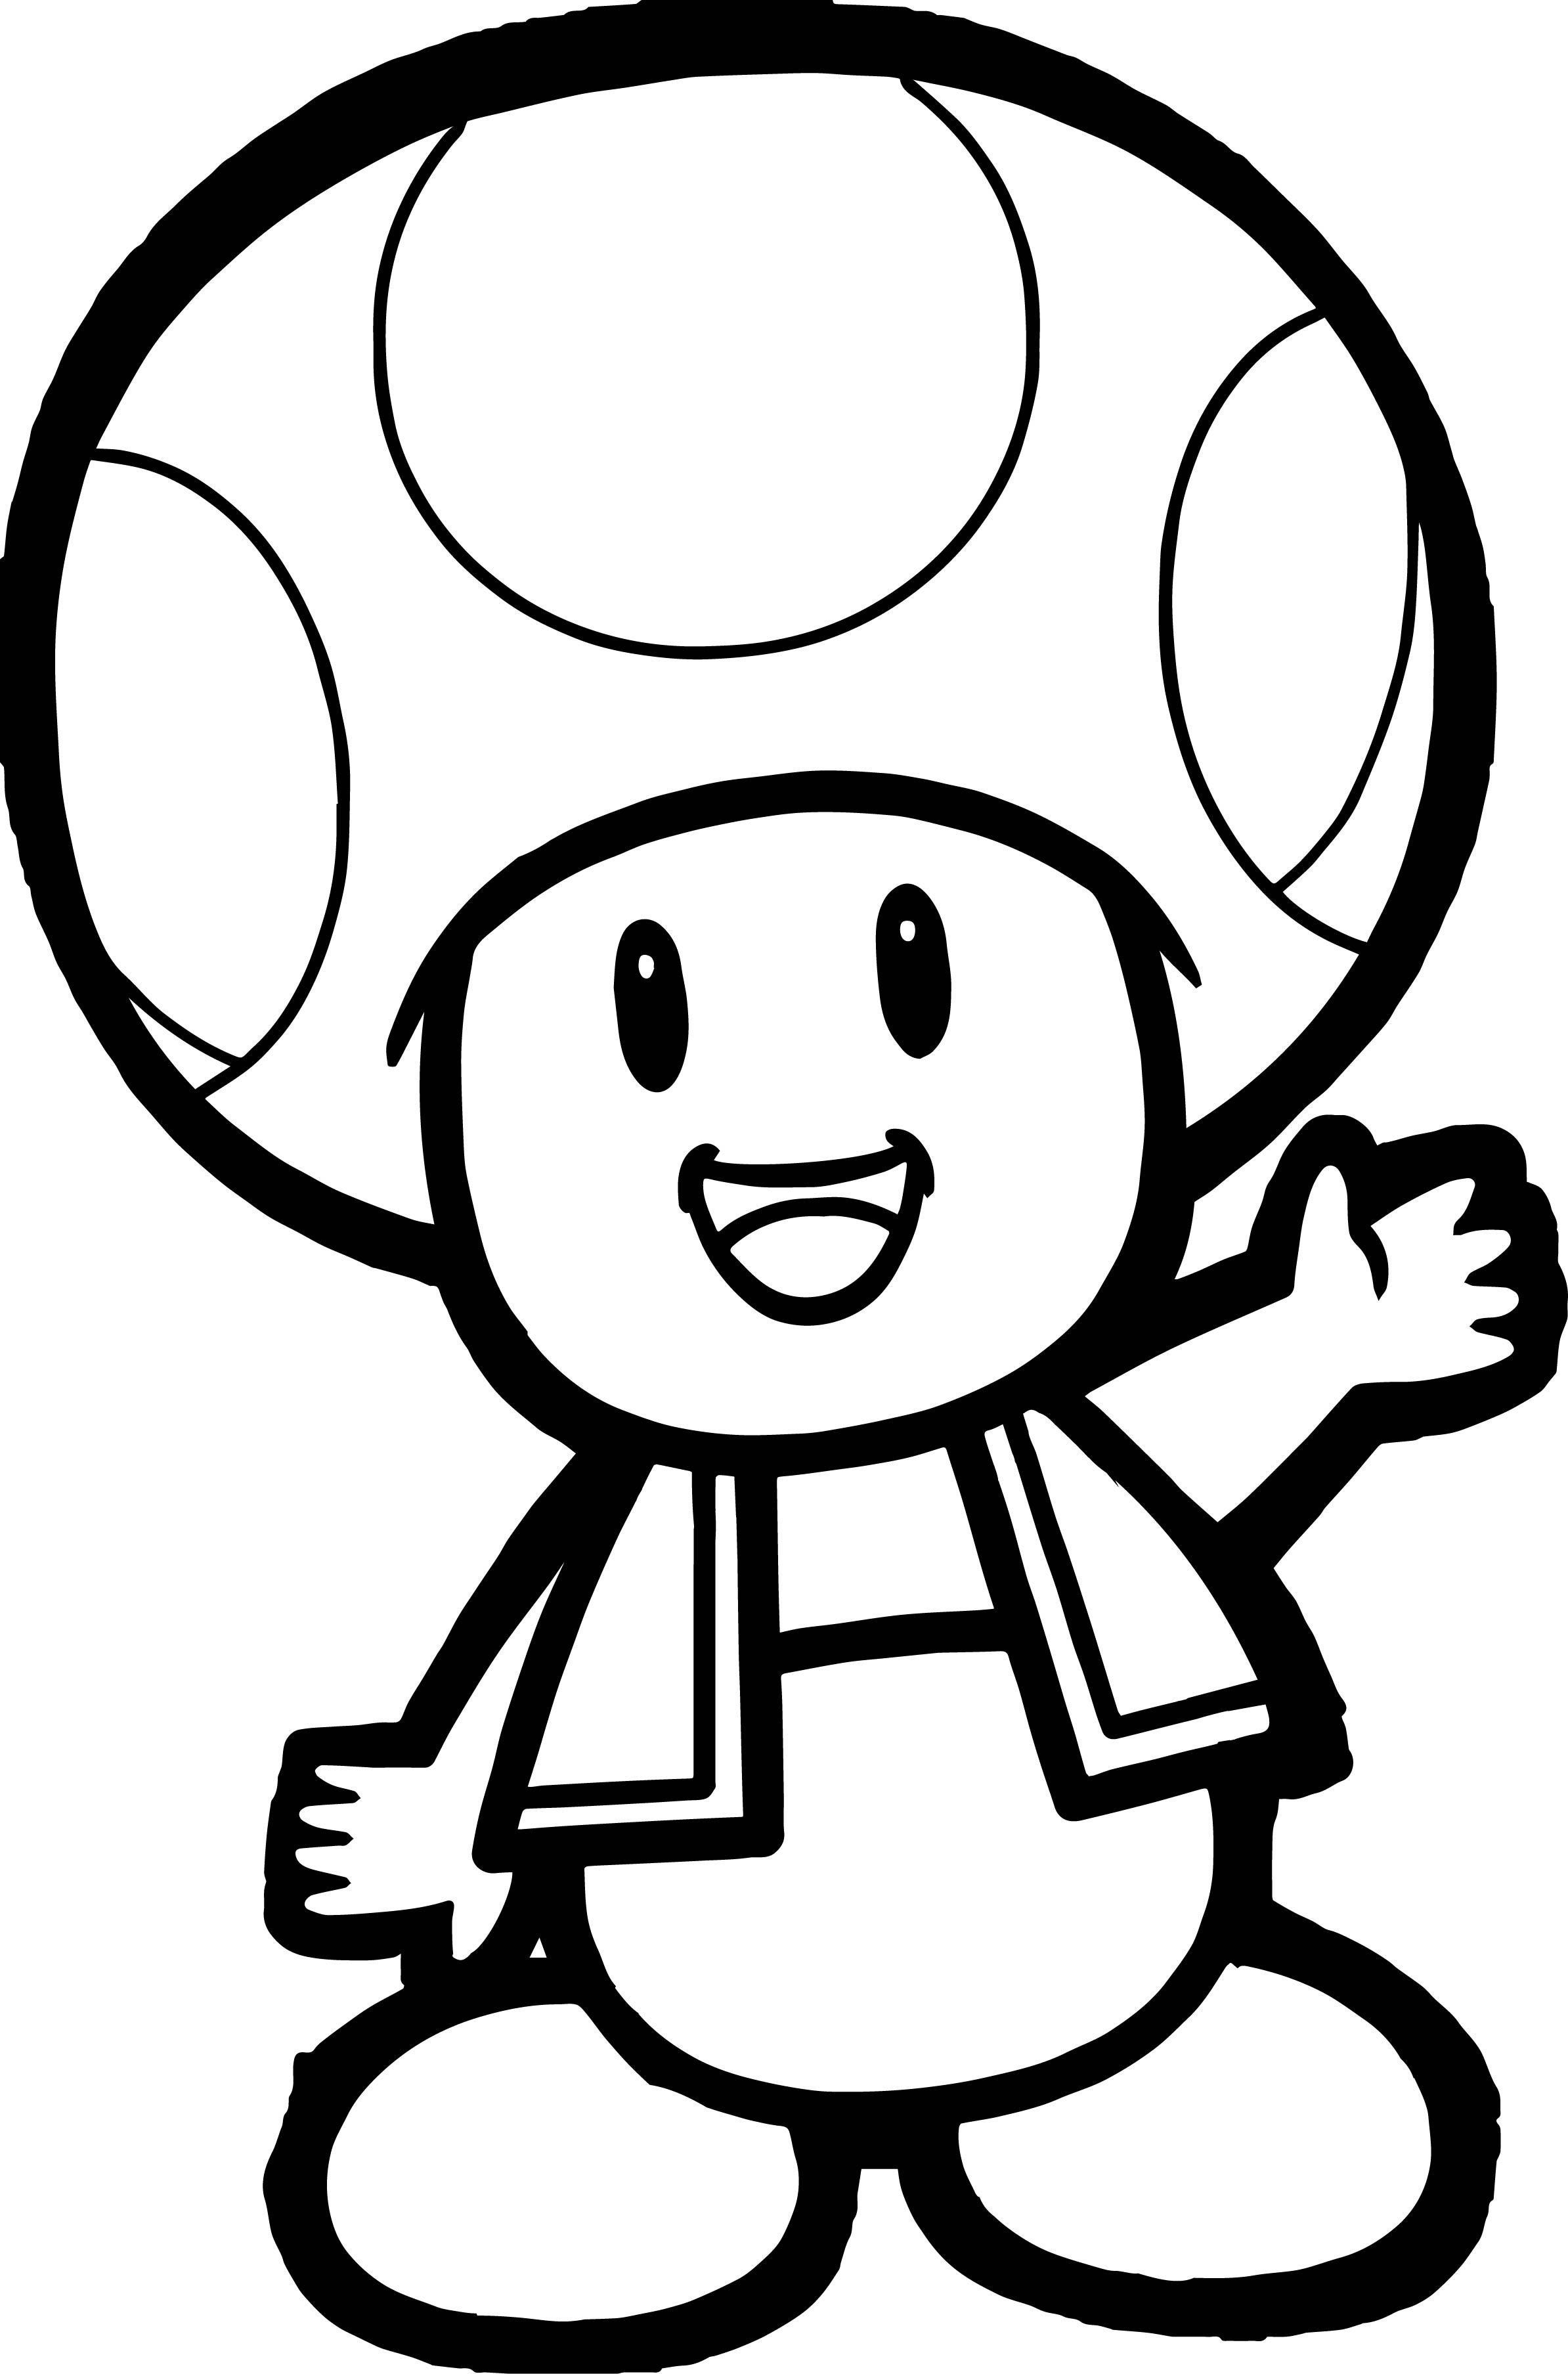 Toad Coloring Pages : coloring, pages, Super, Mario, Coloring, Pages, Beautiful, Mushroom, Pages,